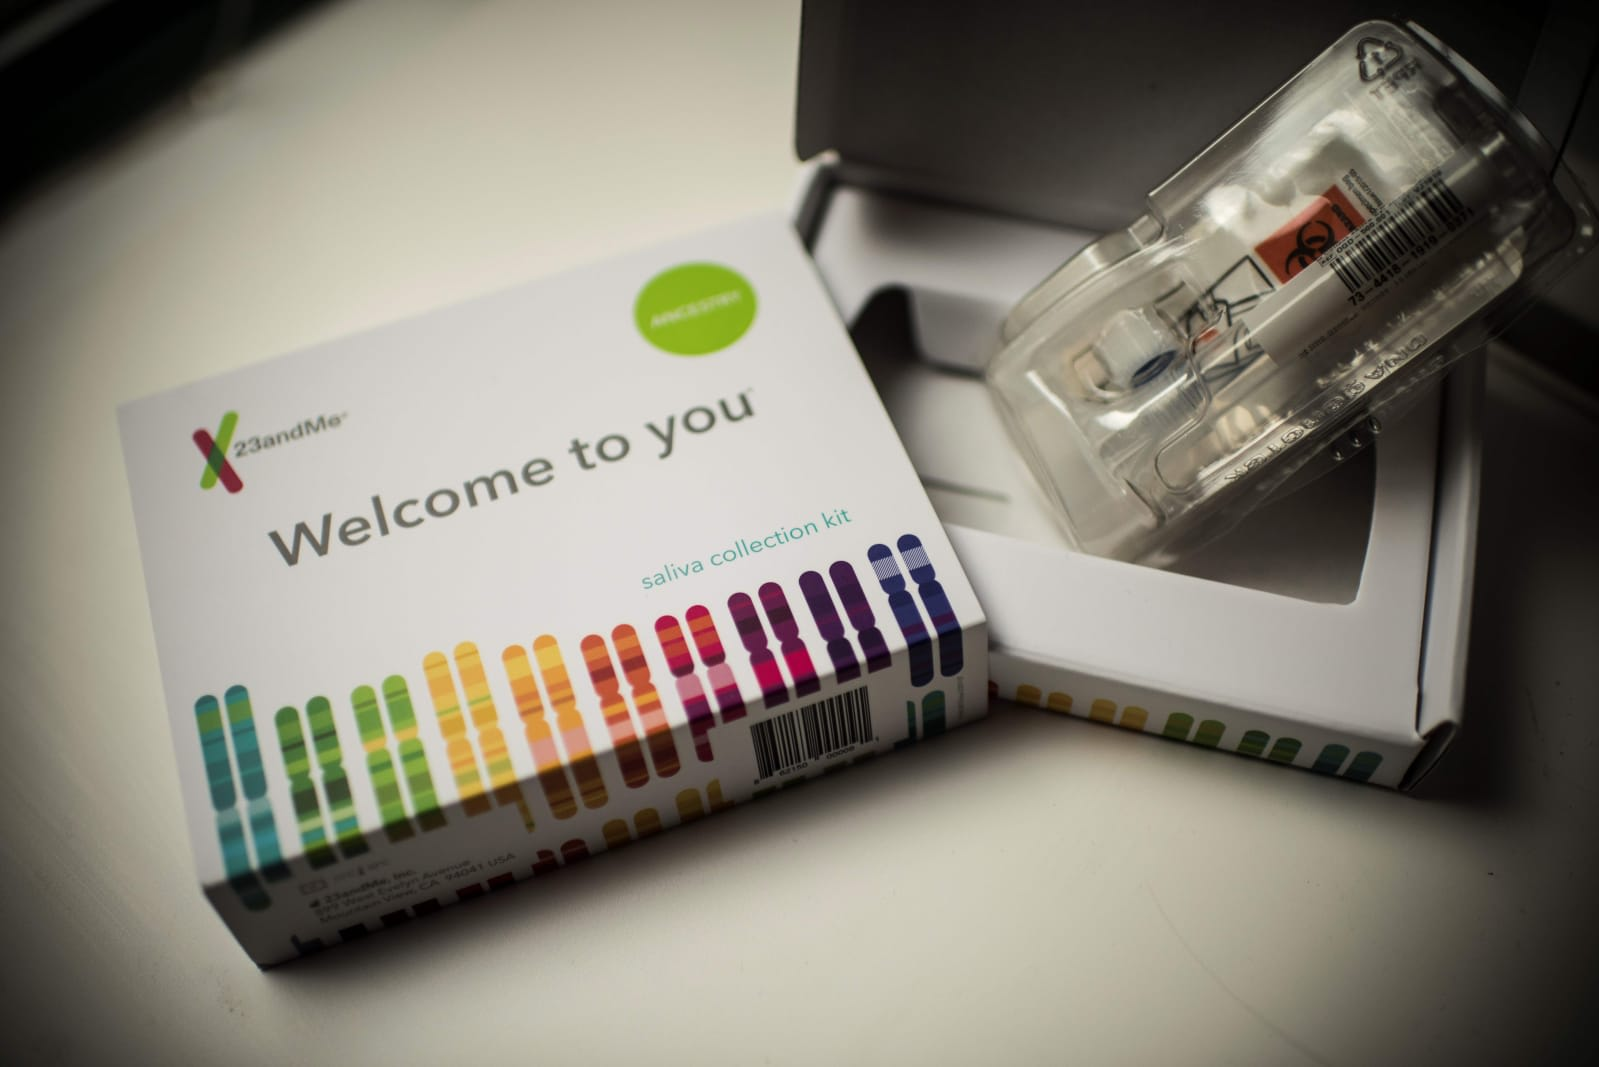 23andMe says gene report can detect risk of T2D